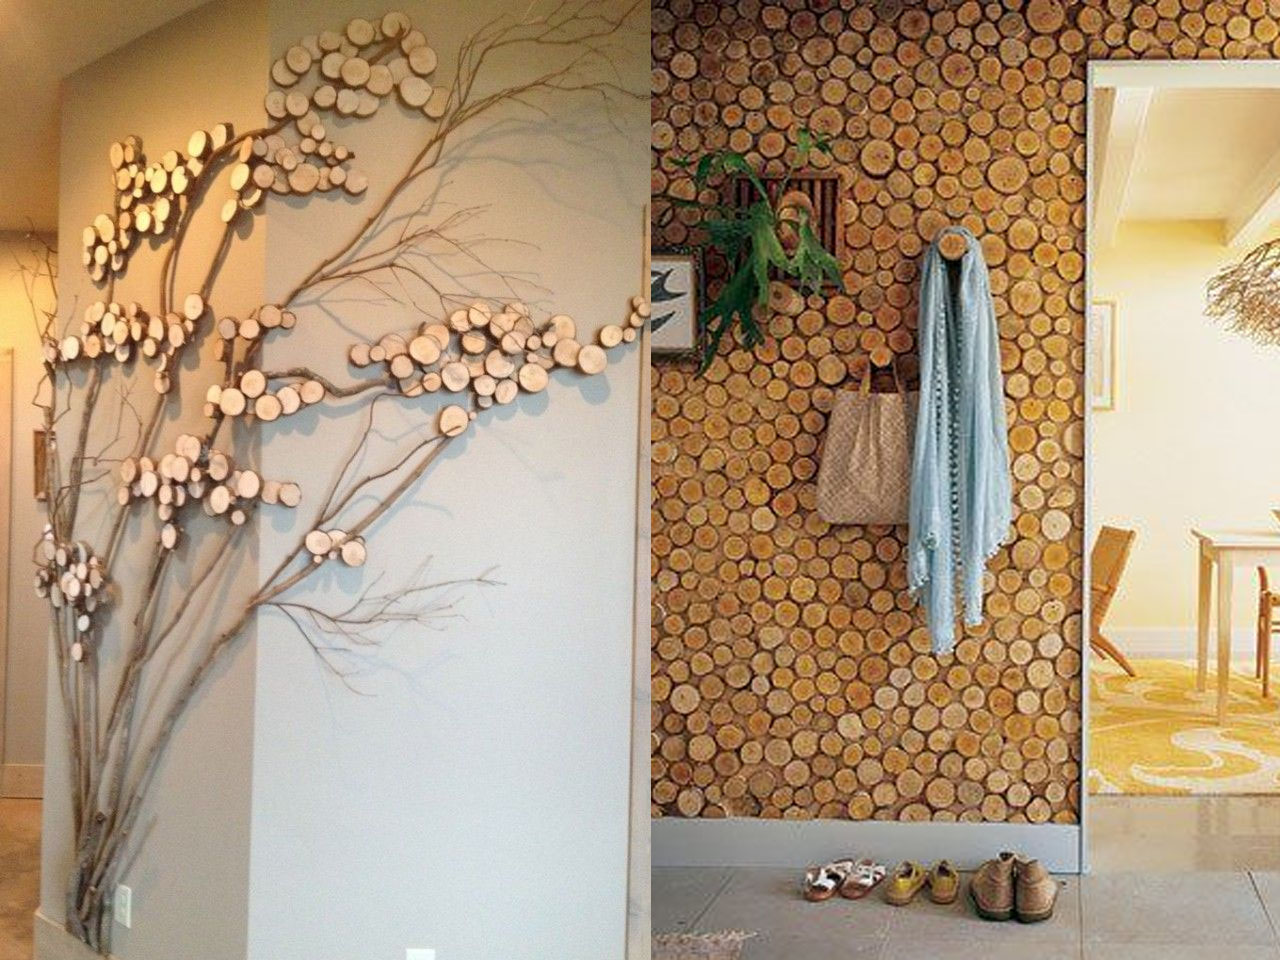 15 ideas molonas y r sticas de decoraci n con troncos de for Pinturas rusticas para interior